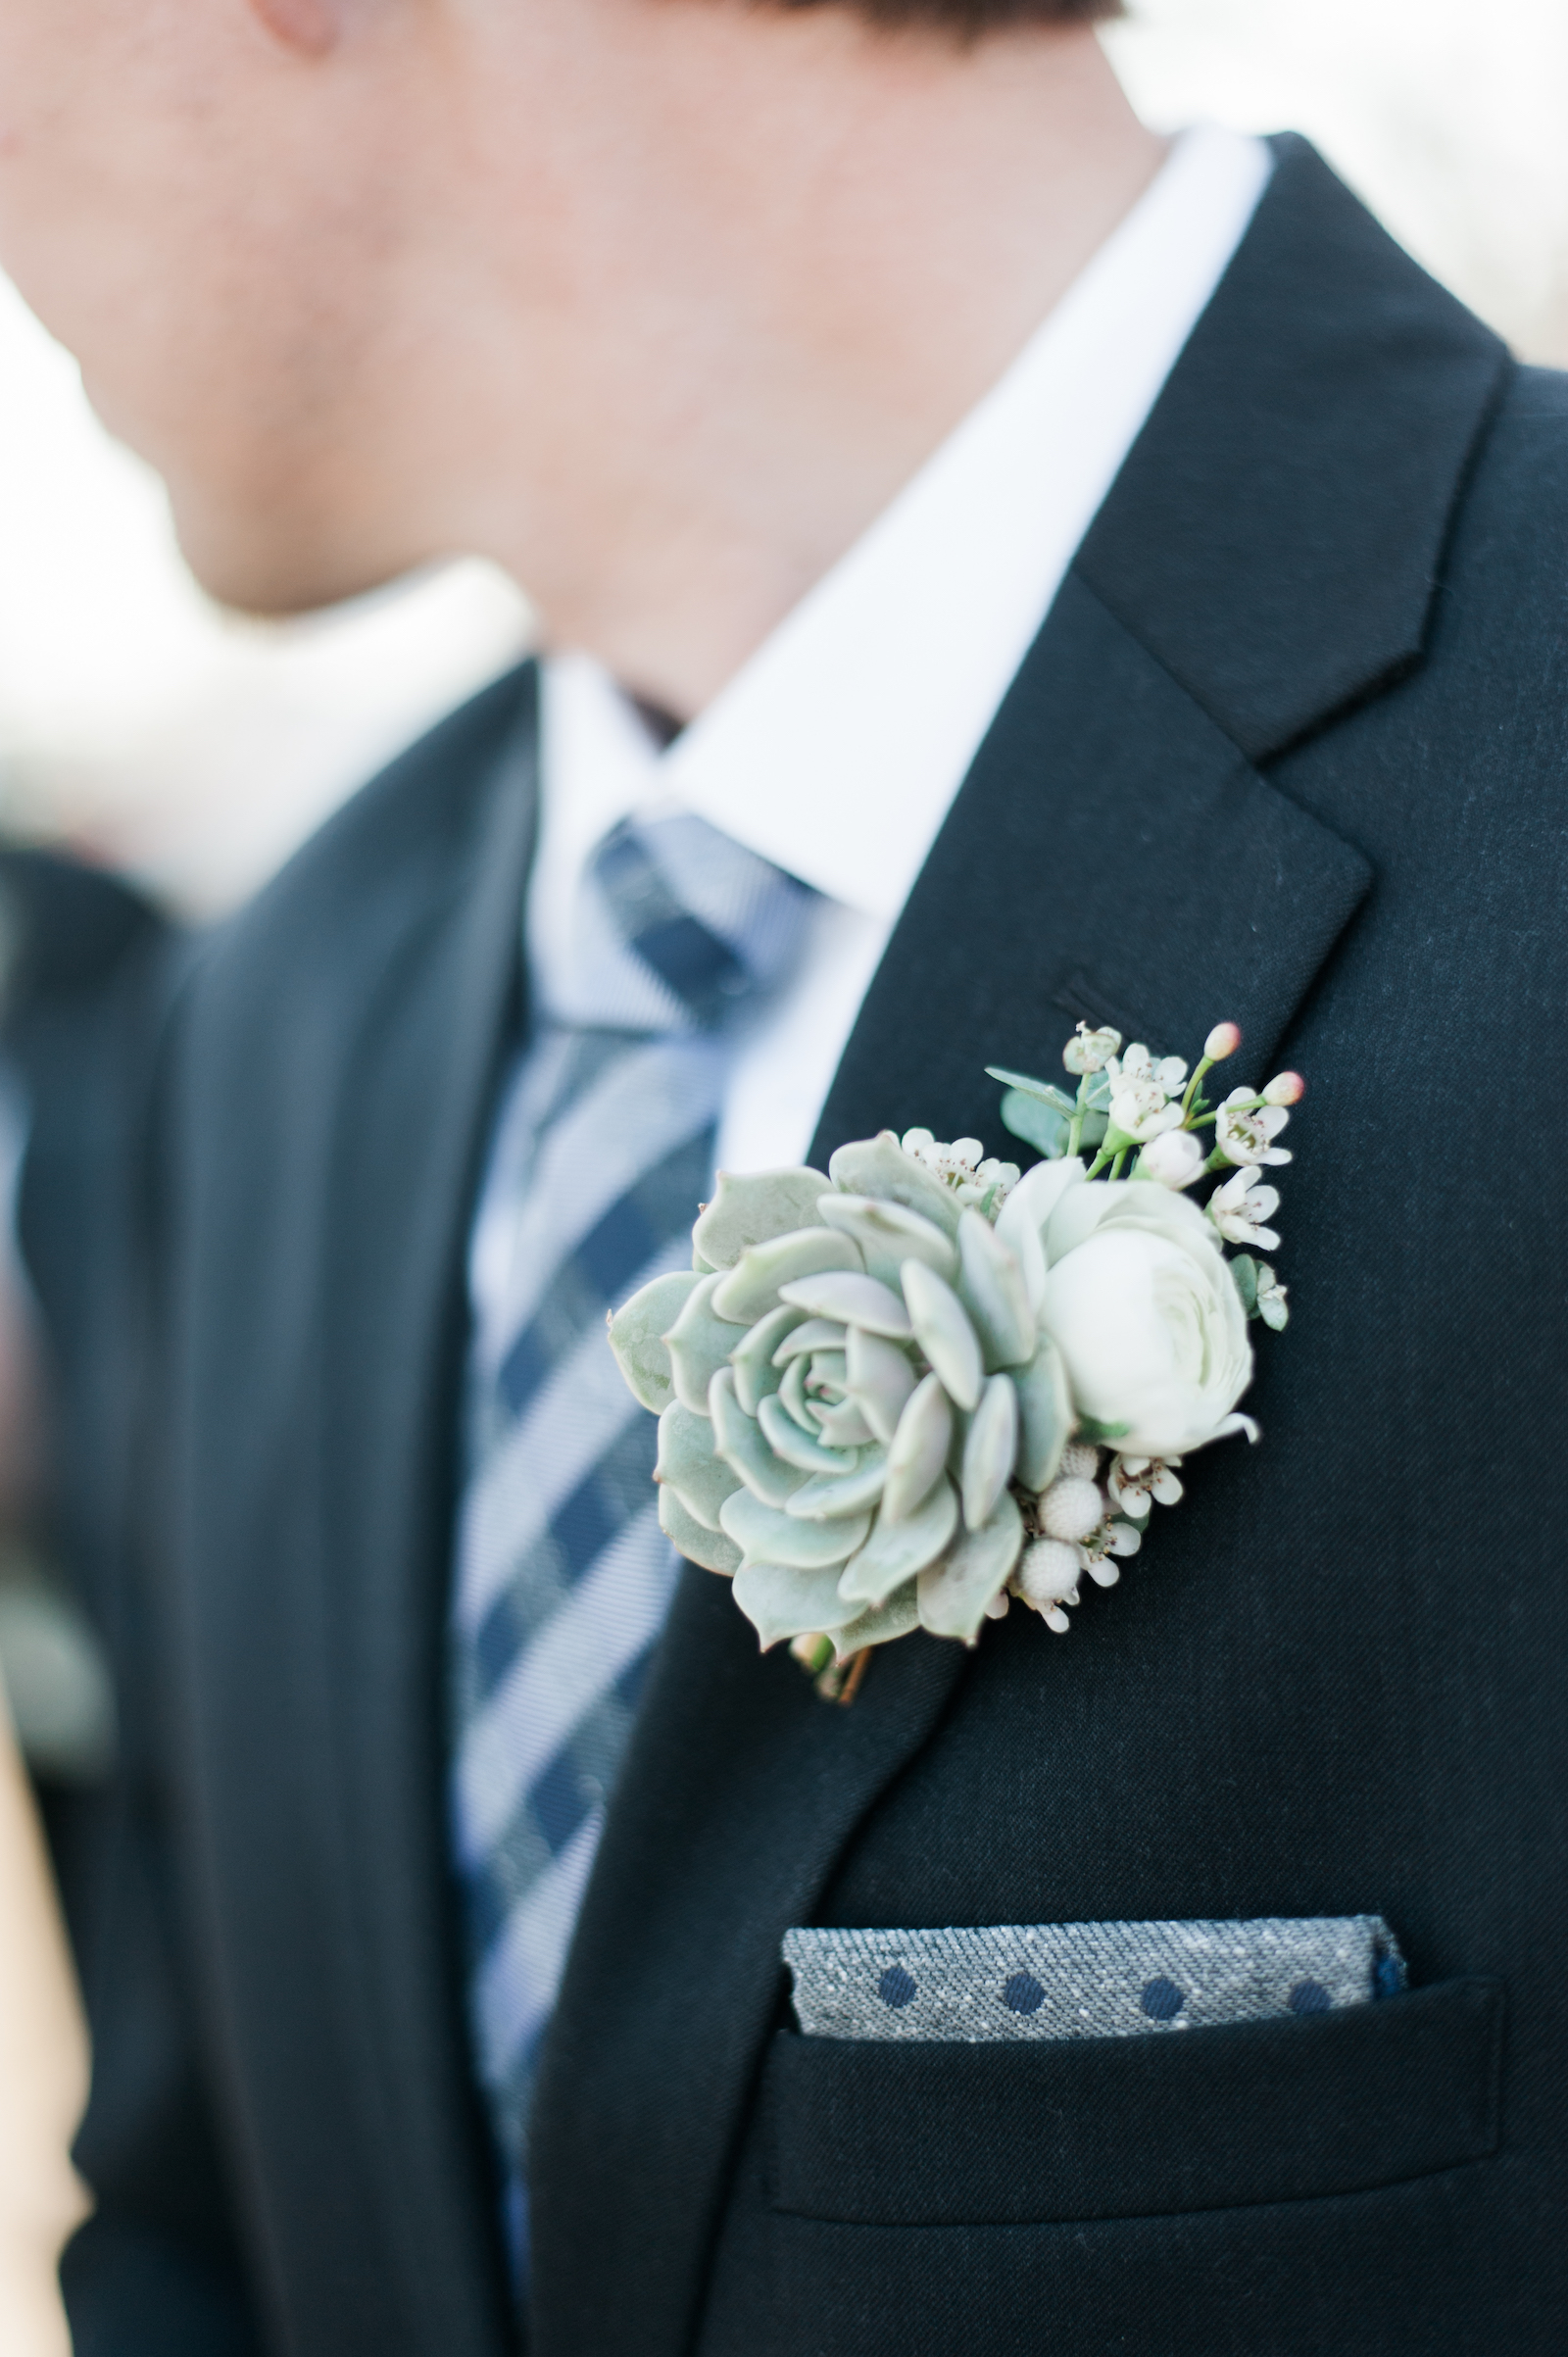 Groom's winter boutonniere with succulent and white ranunculus